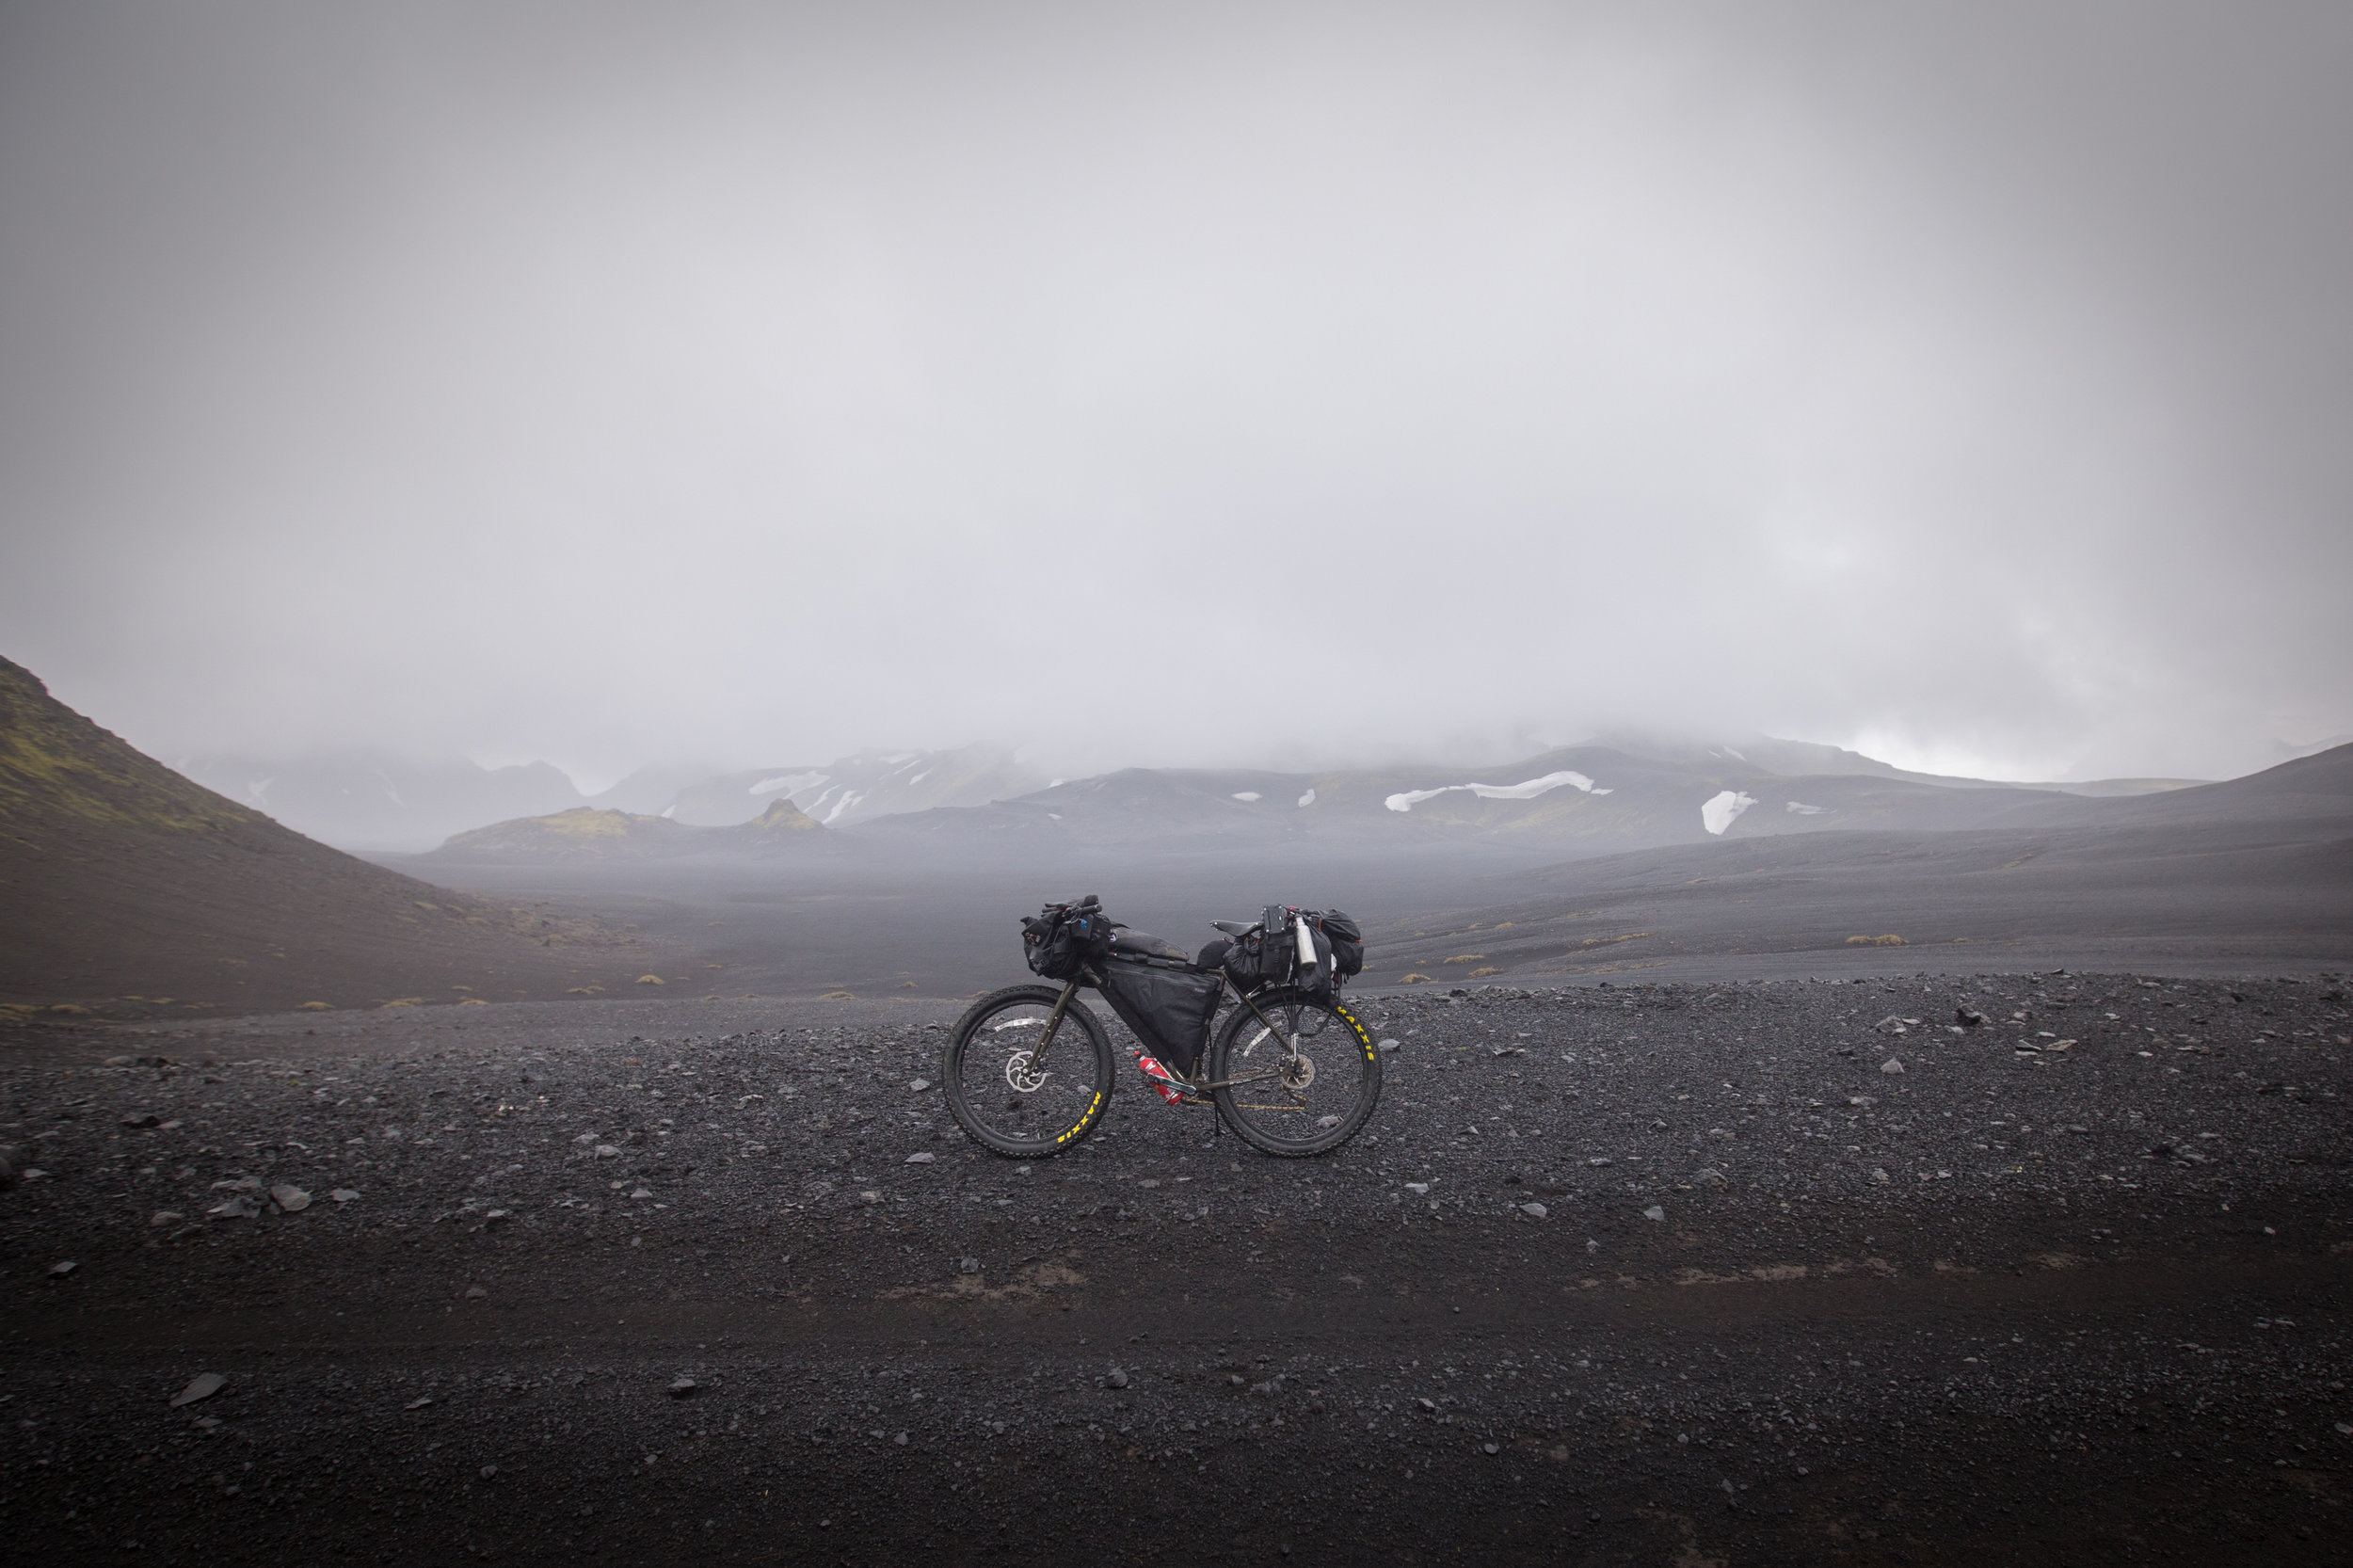 bikepacking, bikepacking blog, bikepacking gear, bikepacking routes, bicycle touring, bicycle touring blog, bicycle touring apocalypse, cyclist, jack mac, jack macgowan, van life, surly, surly bikes, 29er, fat bike, iceland, visit iceland, Laugavegur, Laugavegur hiking trail, wildcat gear, rvelate designs, atm handmade goods, j paks, j paks farvapak, trangia, car sick designs, car sick designs handee randee, ecr